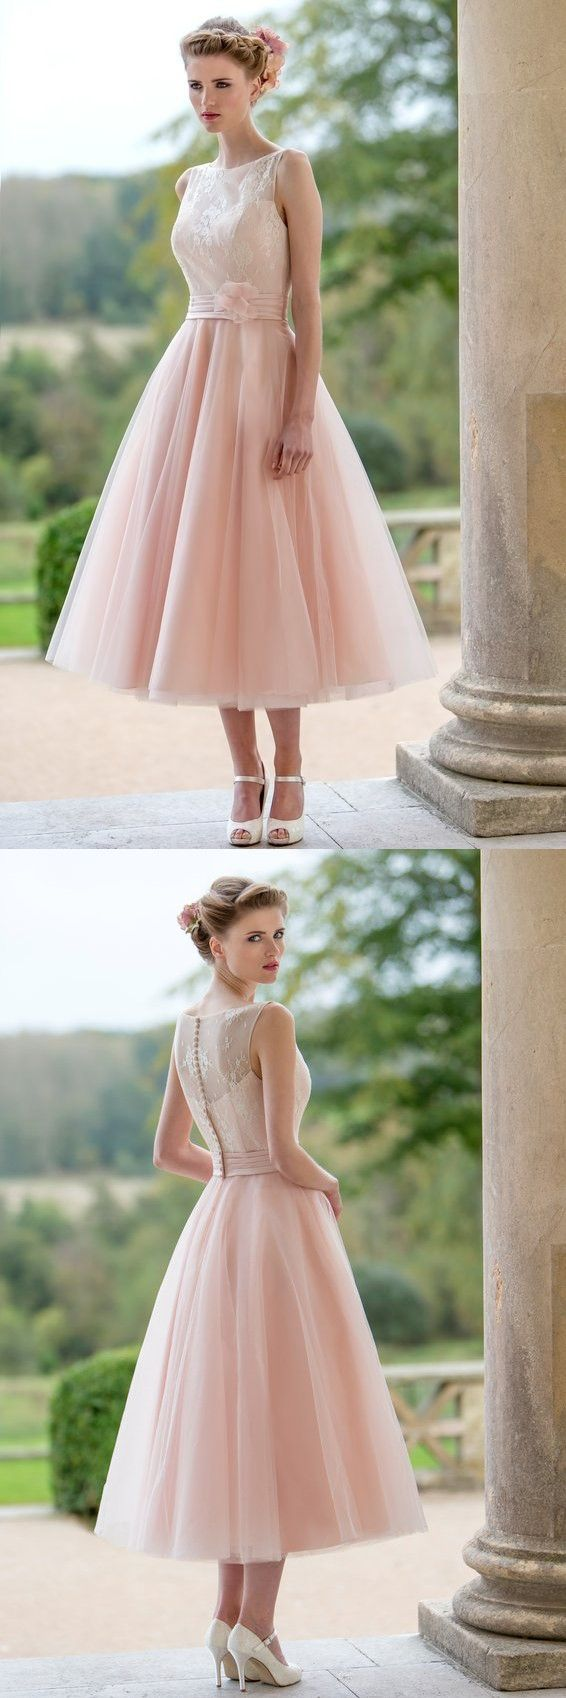 Best 25 tea length bridesmaid dresses ideas on pinterest tea tea length bridesmaid dresses 2016 light pink lace bateau sheer neck tulle wedding party gowns with hand made flowers cheap elegant ombrellifo Image collections